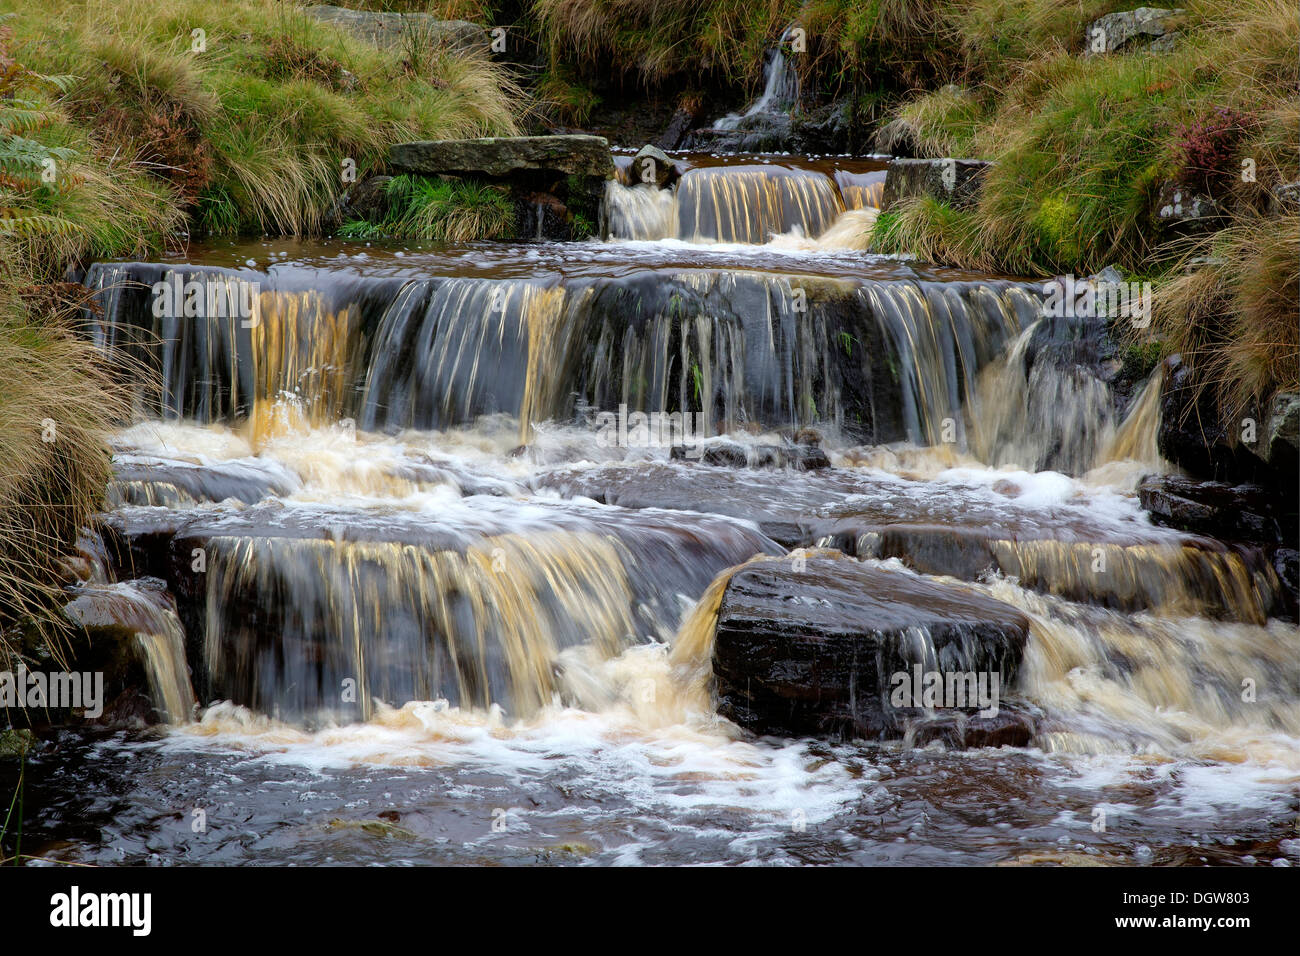 Peat stained water cascading down stepped falls in Crowden Brook near Edale in the Derbyshire Peak District - Stock Image